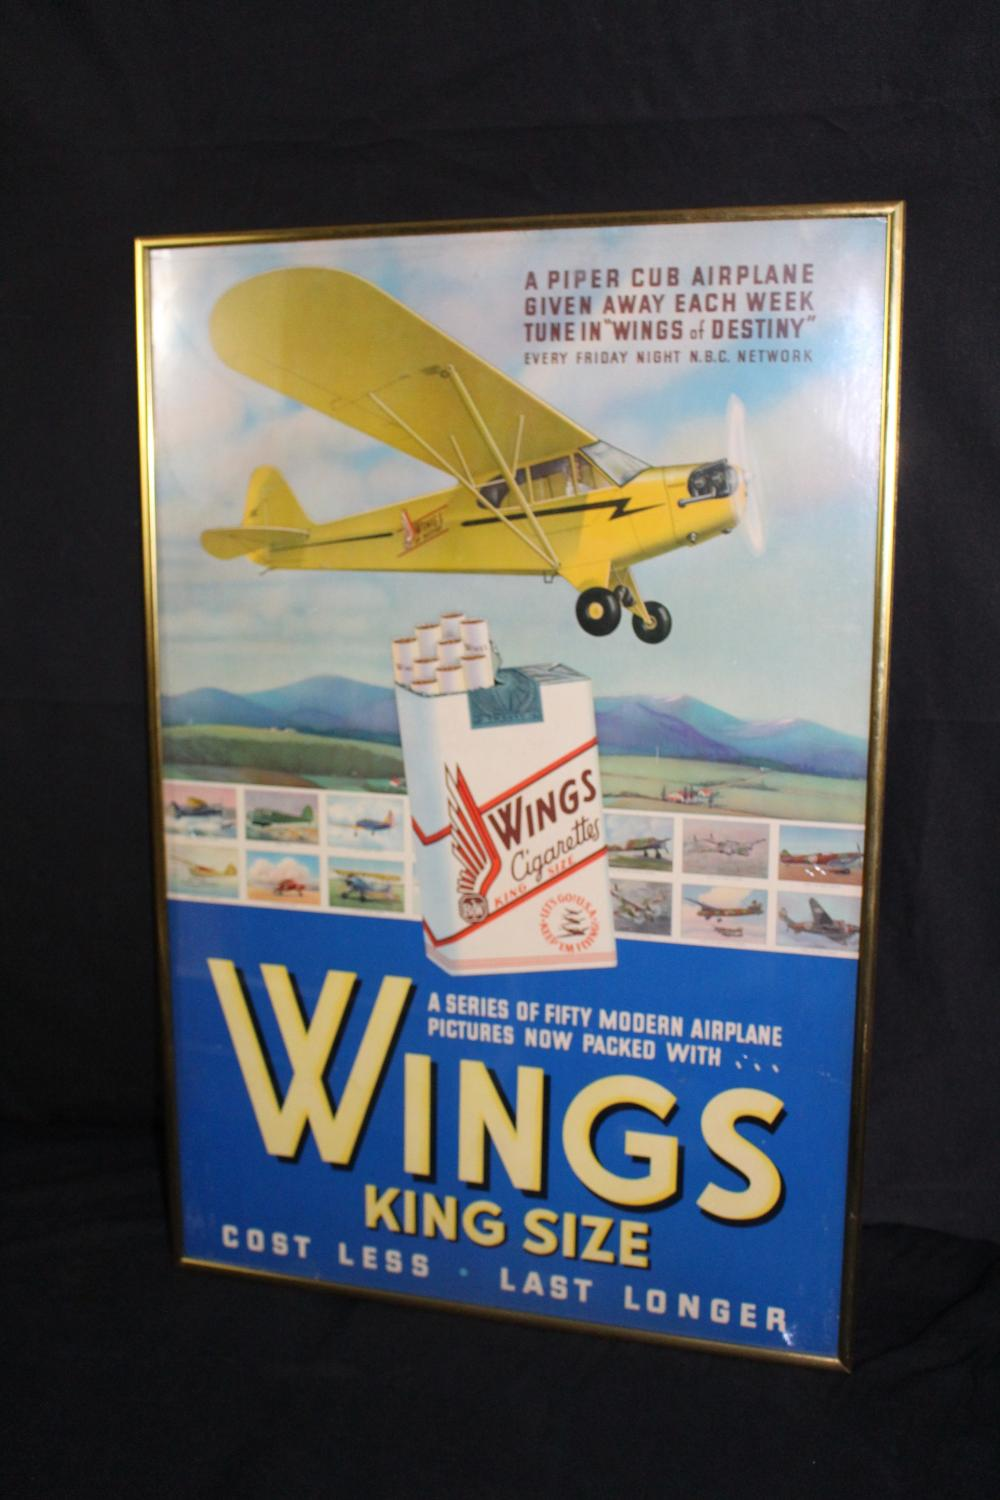 WINGS CIGARETTES PIPER CUB AIRPLANE SIGN